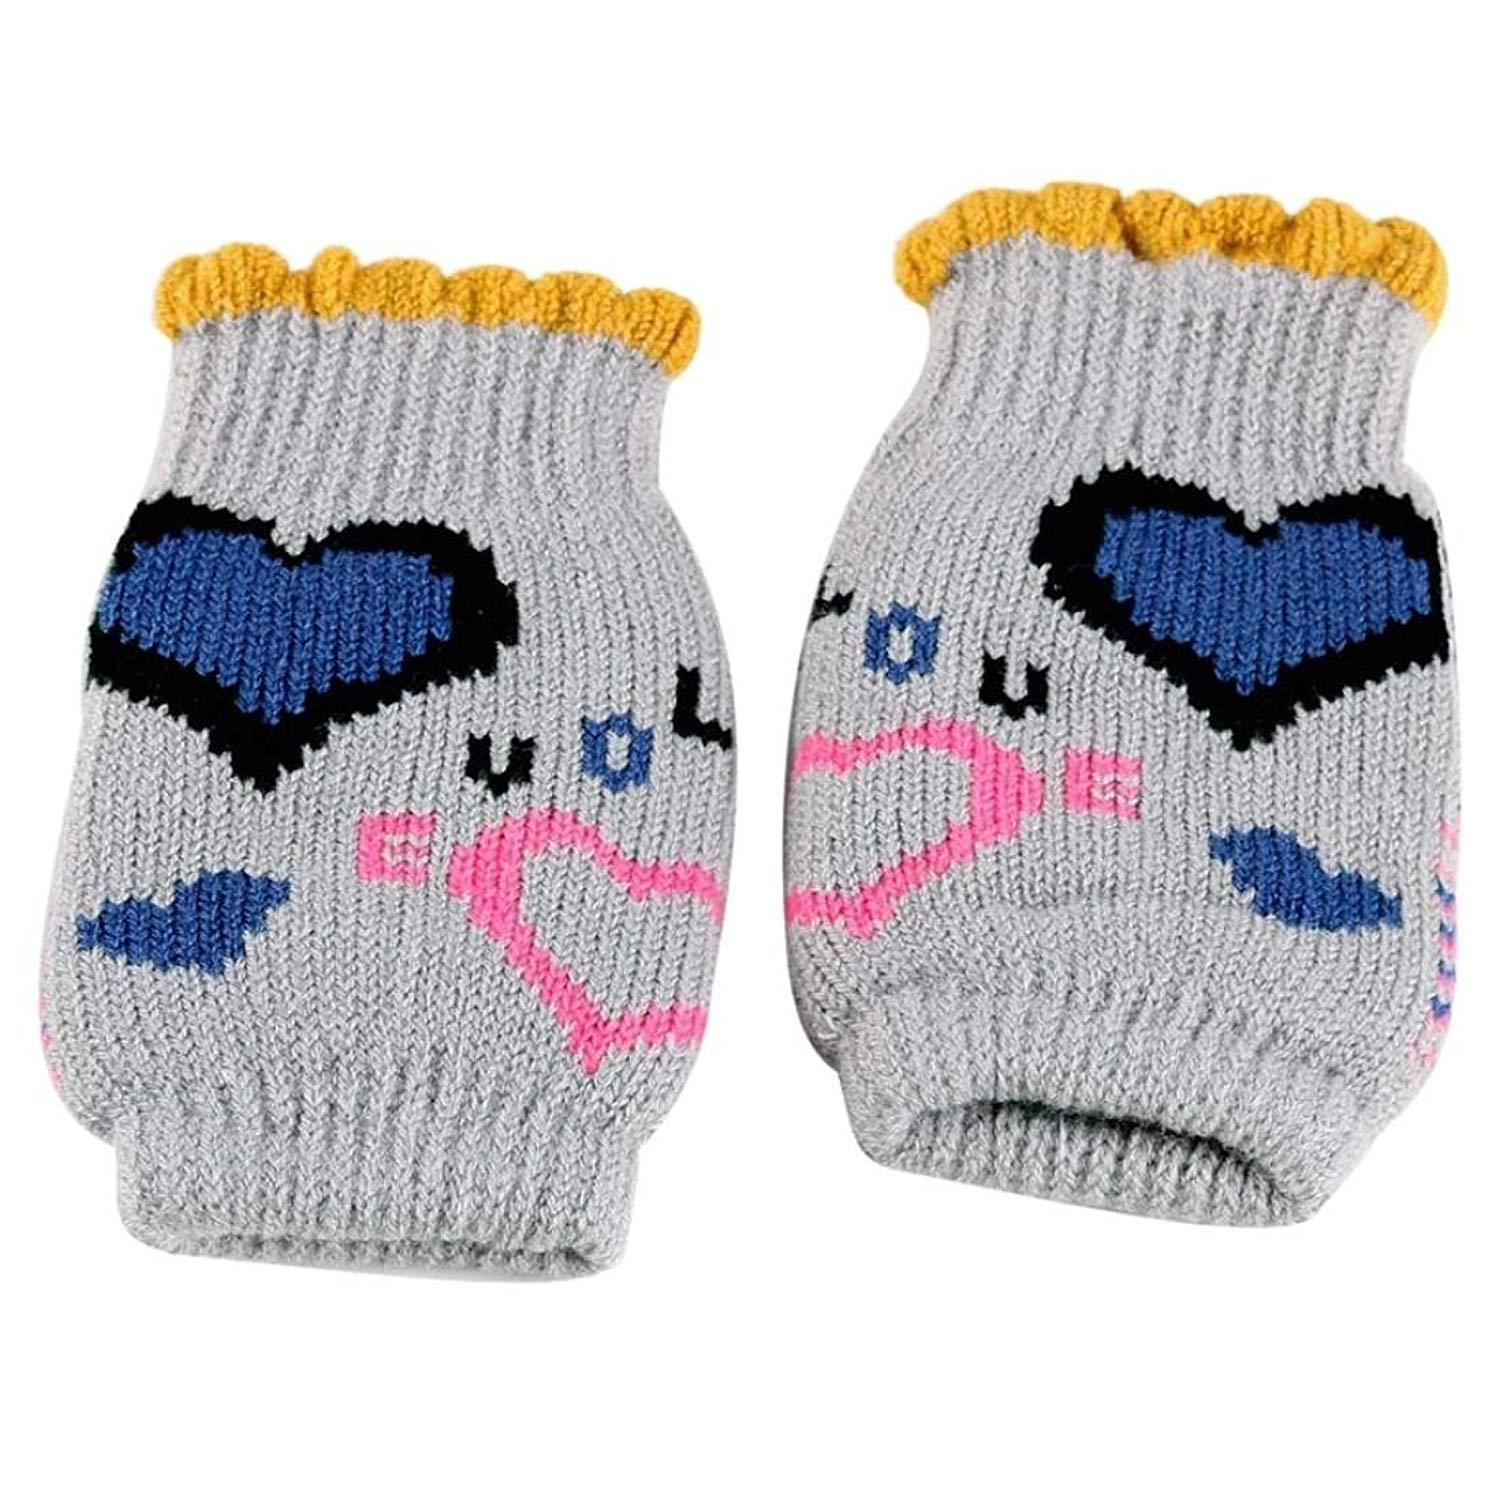 Cheap Free Knitted Glove Pattern, find Free Knitted Glove Pattern ...